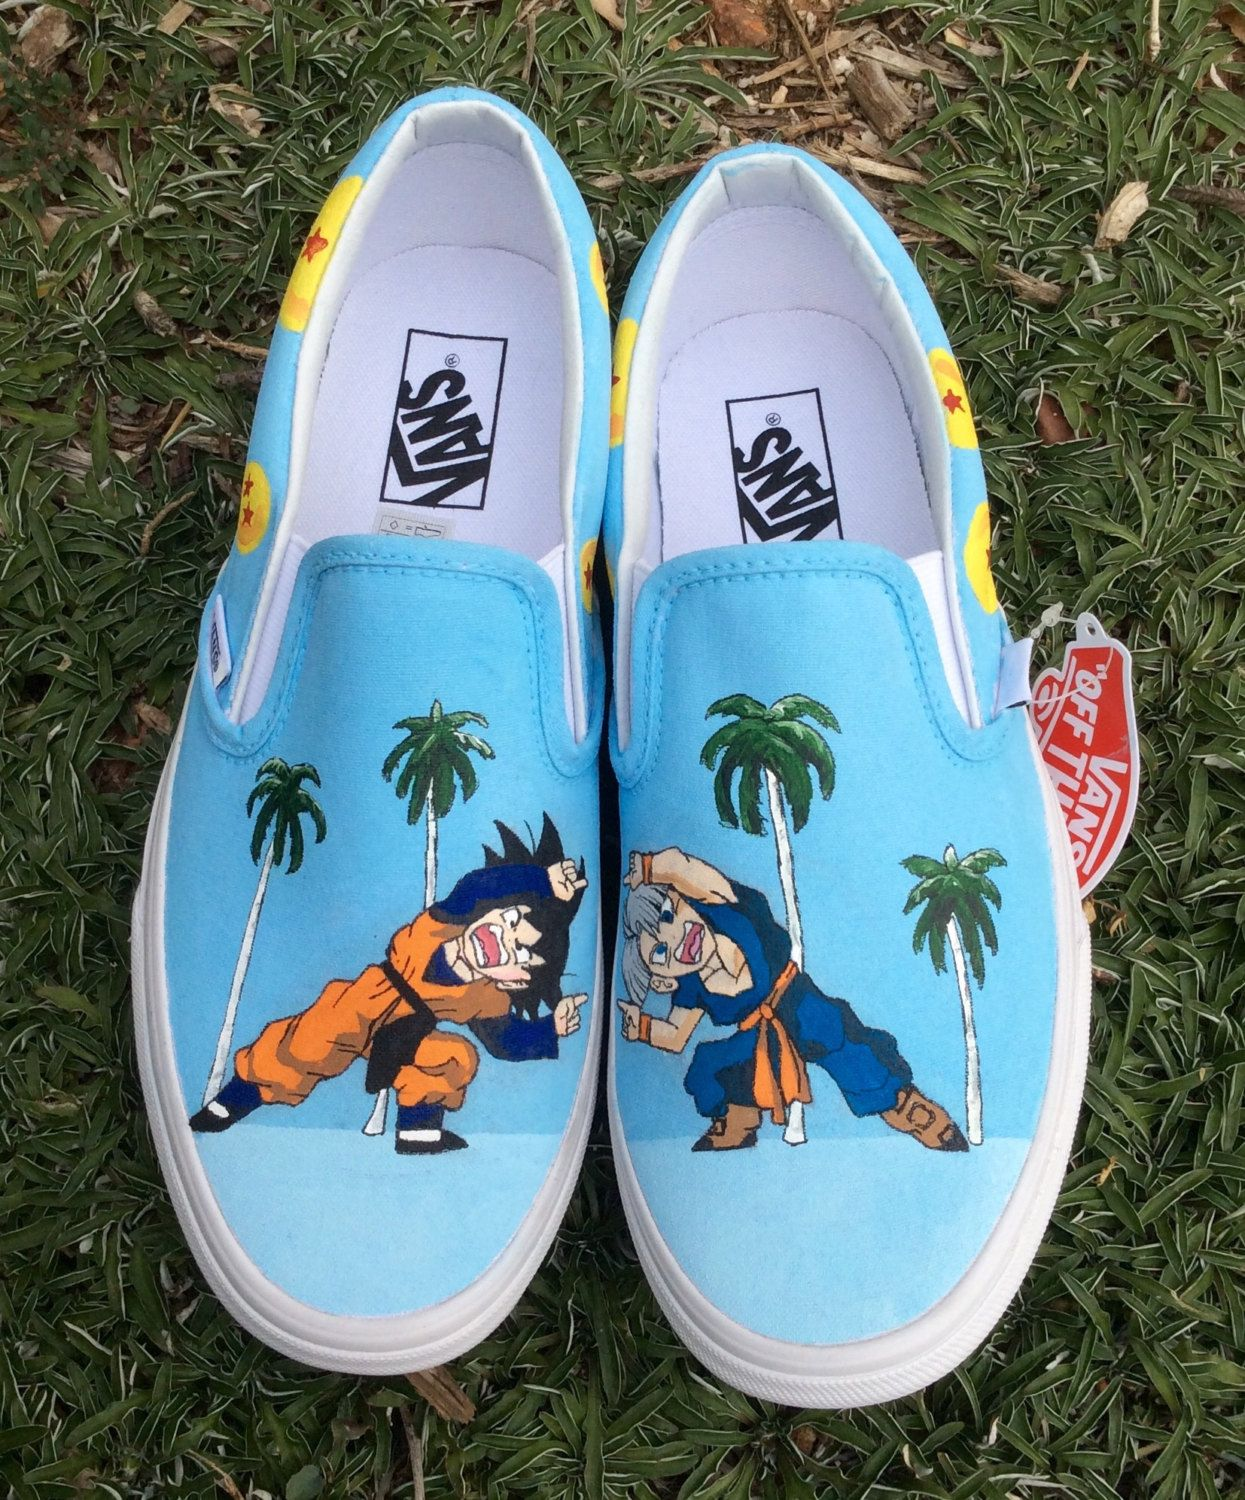 Dragonball Z Custom Hand Painted Shoes Vans Or Standard Shoes